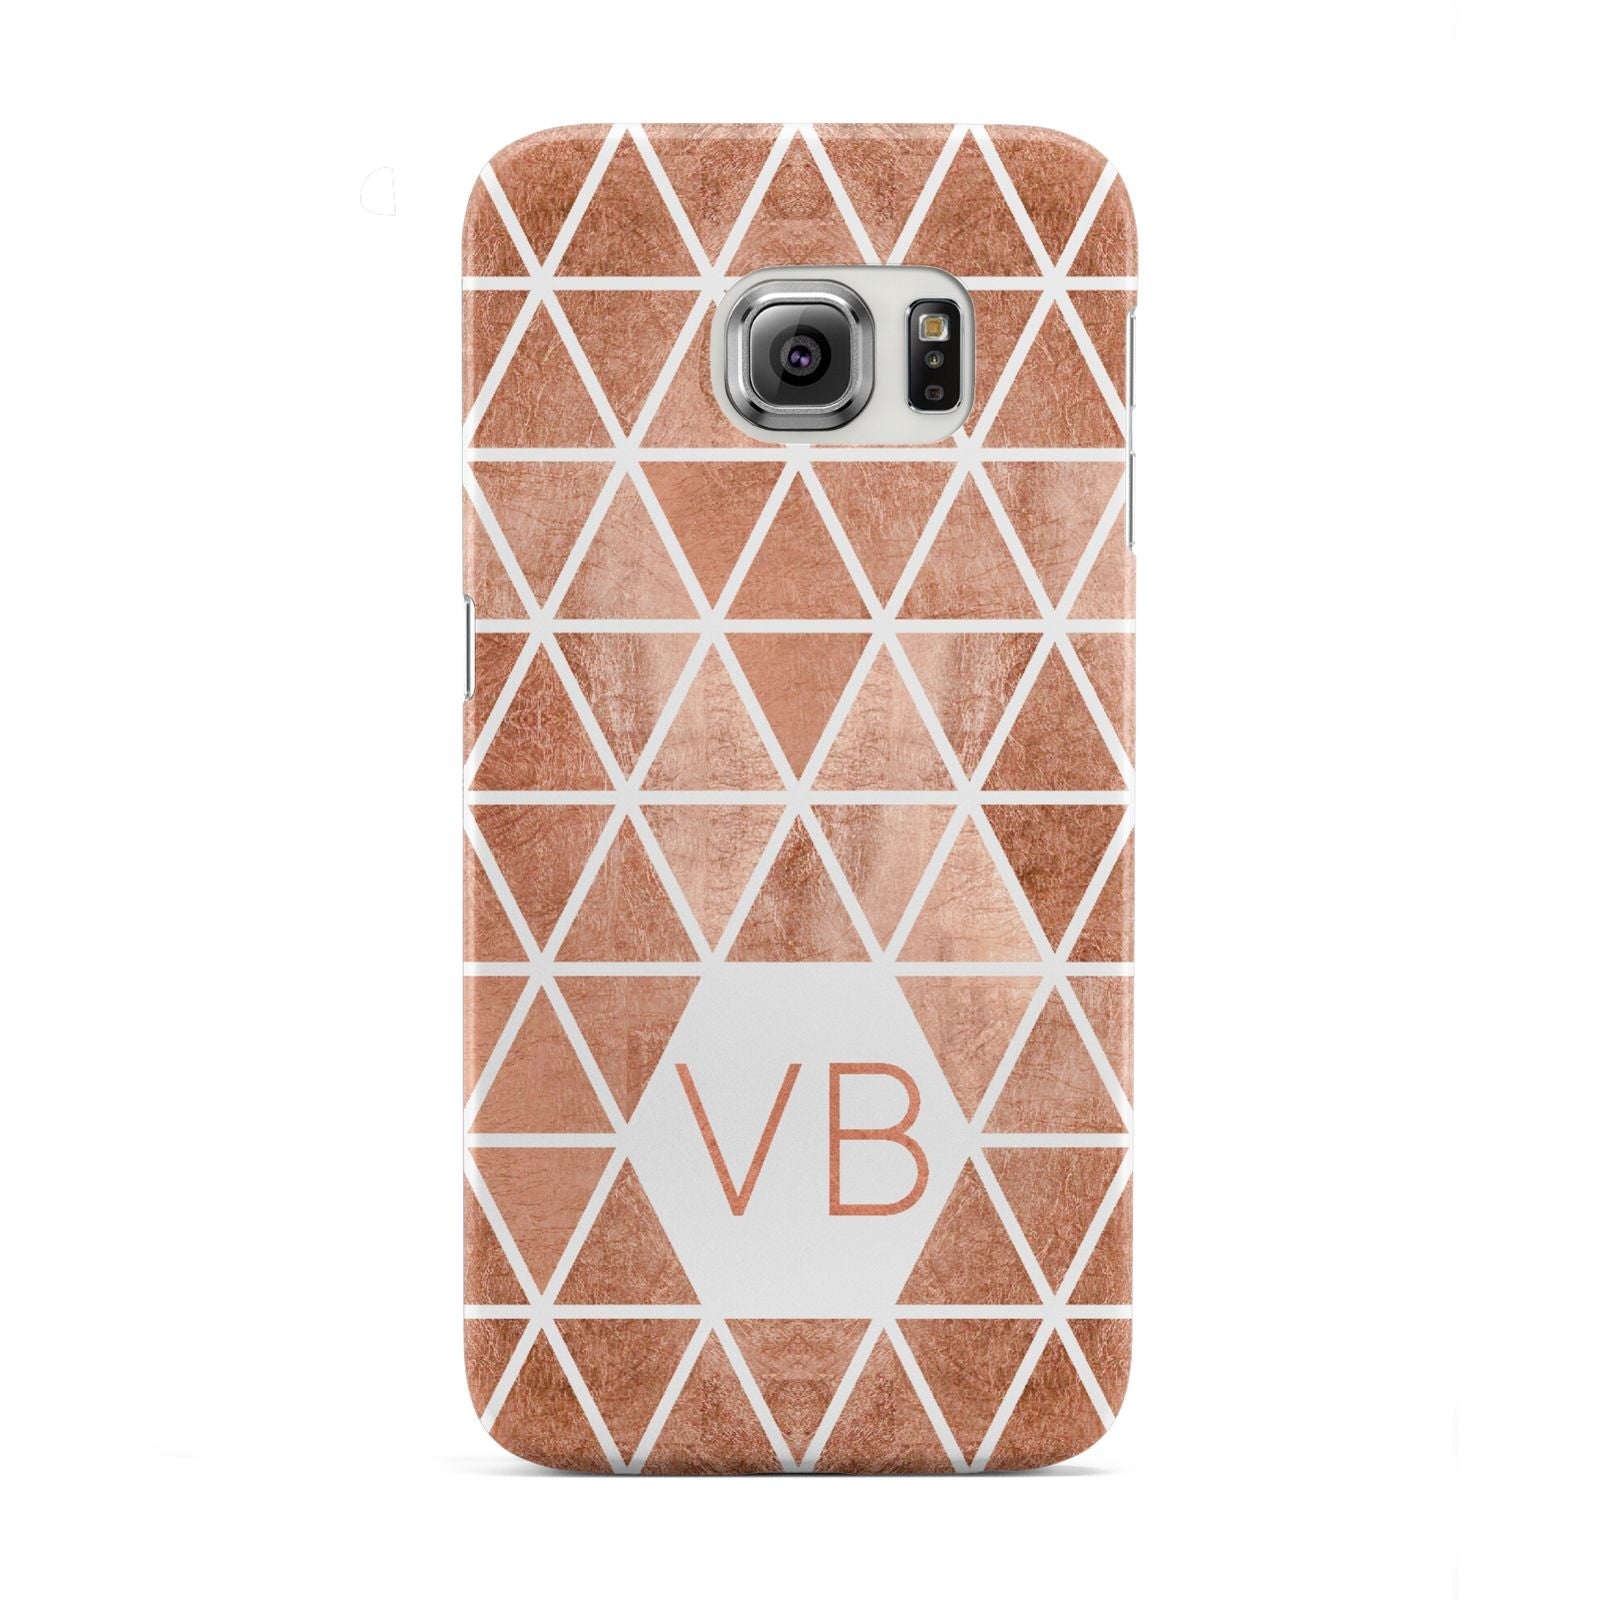 Personalised Copper Initials Samsung Galaxy S6 Edge Case